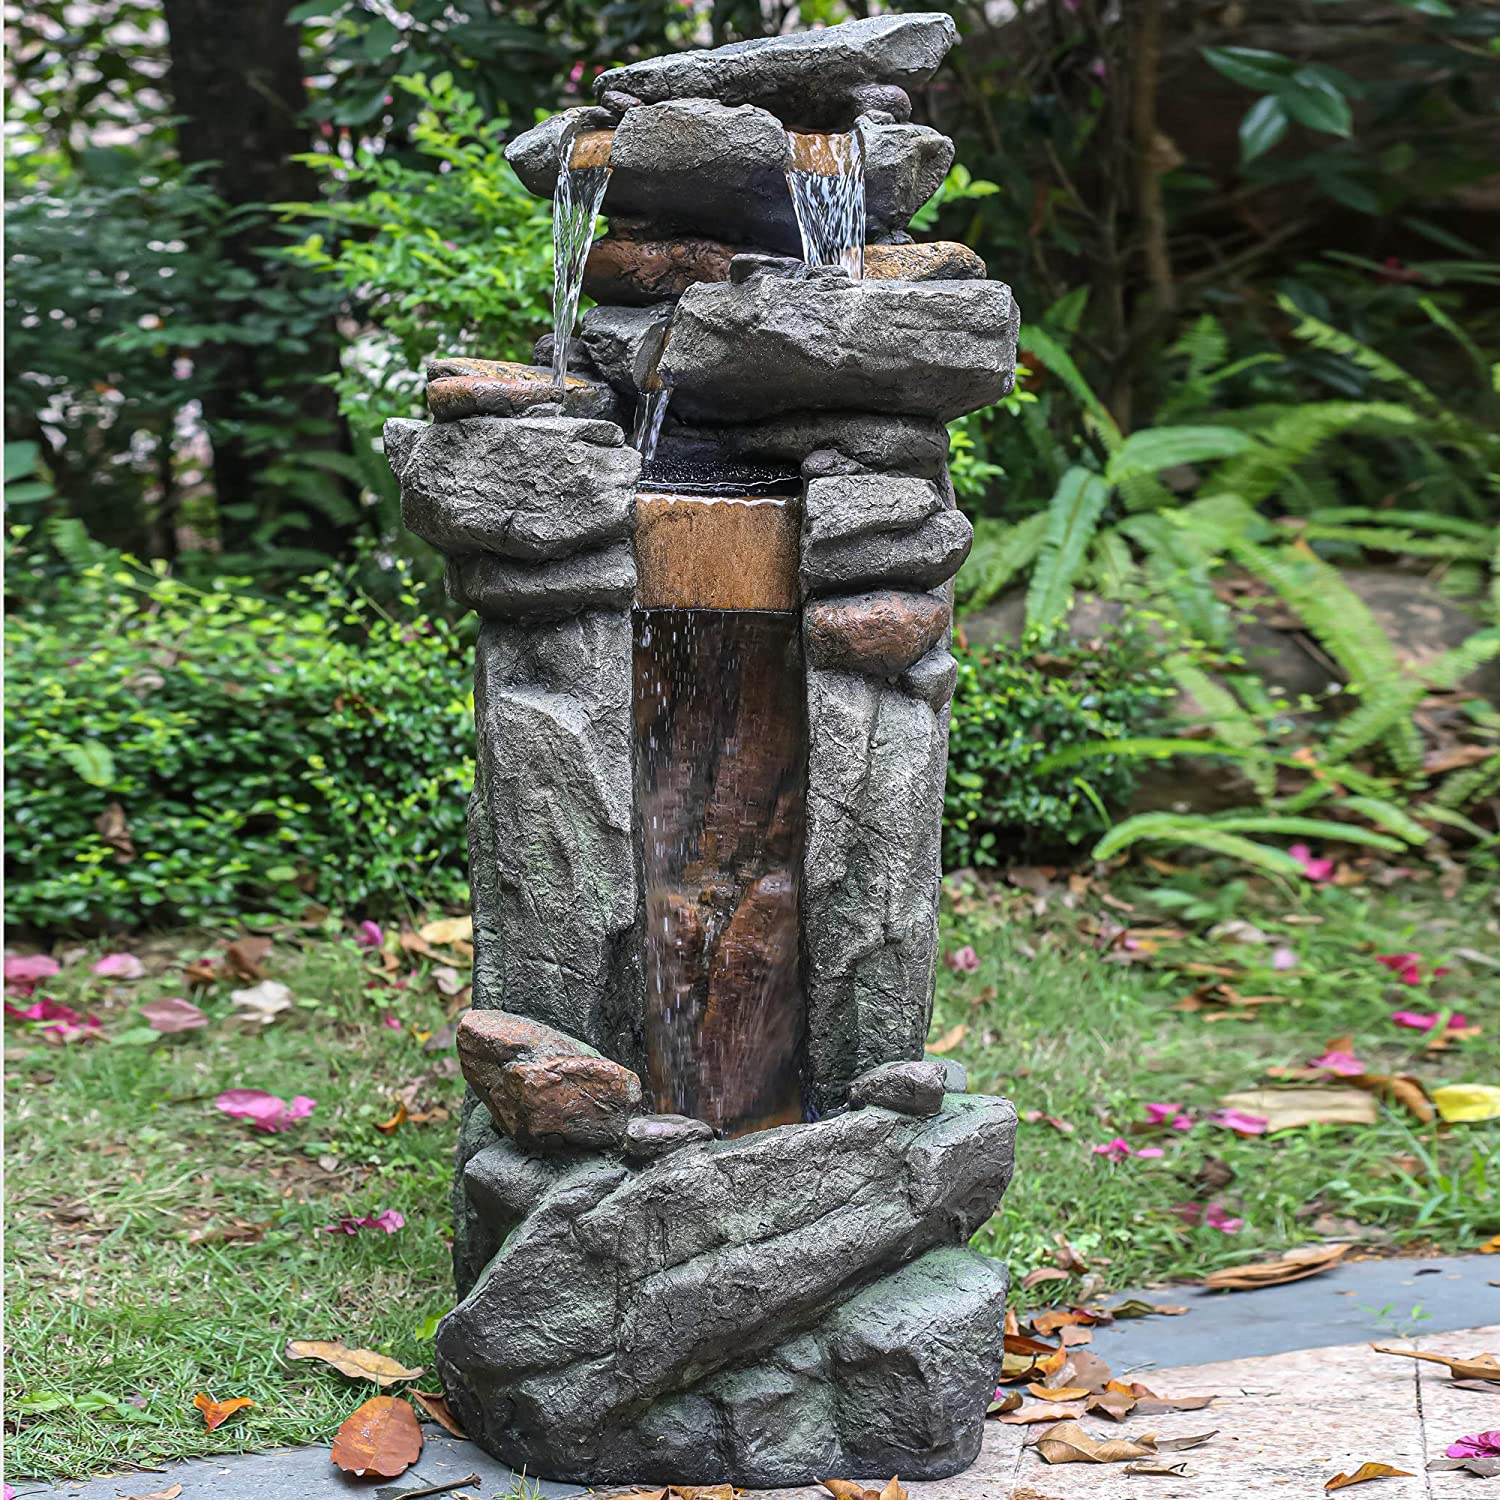 4-Tier Rock Fountain with White LED Lights /& Pump for Patio Yard Garden Lawn Knocbel Outdoor Floor Freestanding Waterfall Water Fountain Multicolor 18.9 L x 12.2 W x 42.13 H